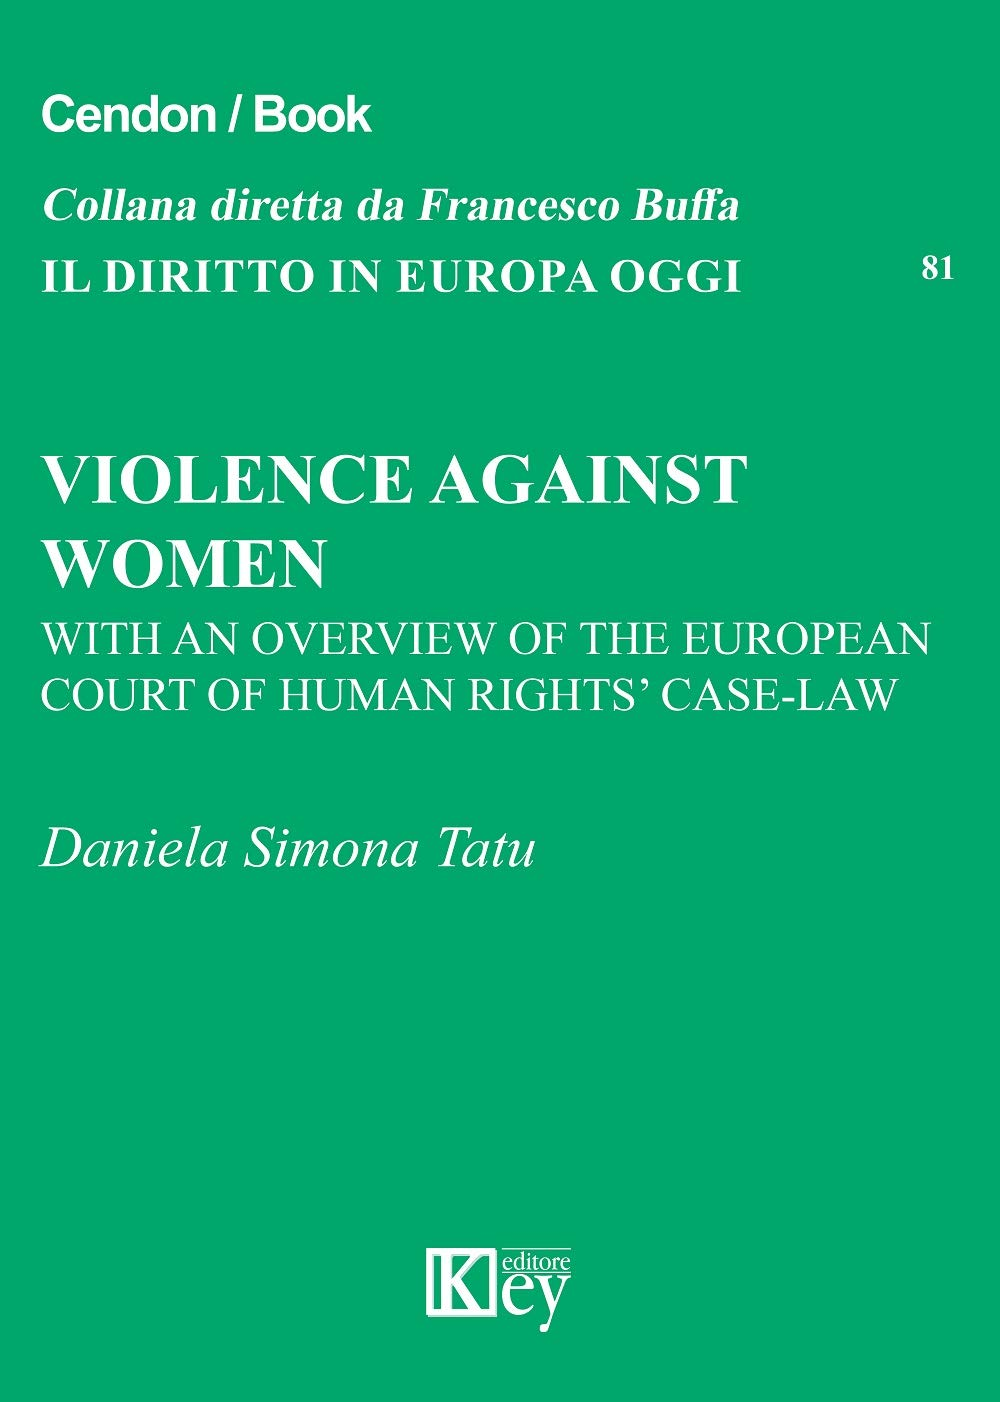 Violence against Women: With an overview of the European Court of Human Rights' case-law (Il diritto in Europa oggi Book 81)